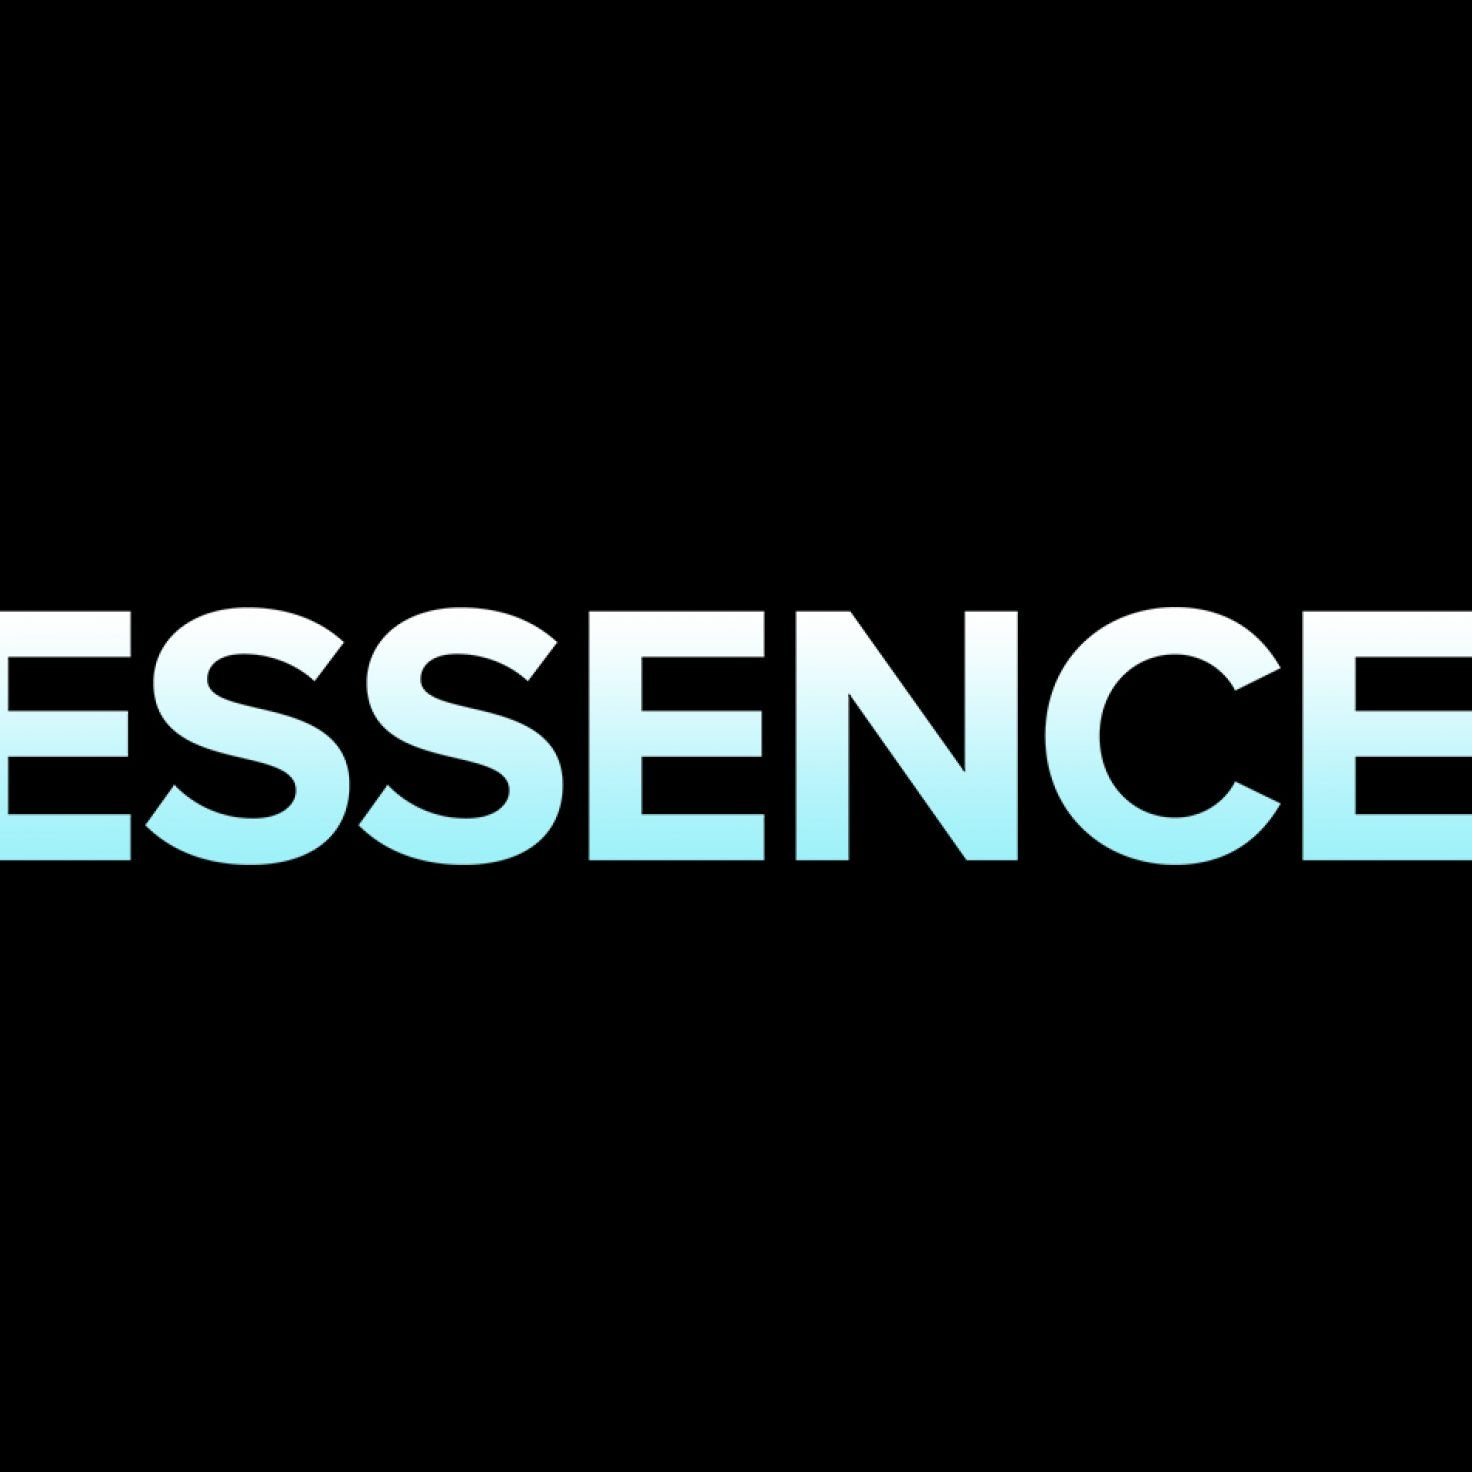 Read ESSENCE's Official Statement on Criticism From 'Black Female Anonymous'